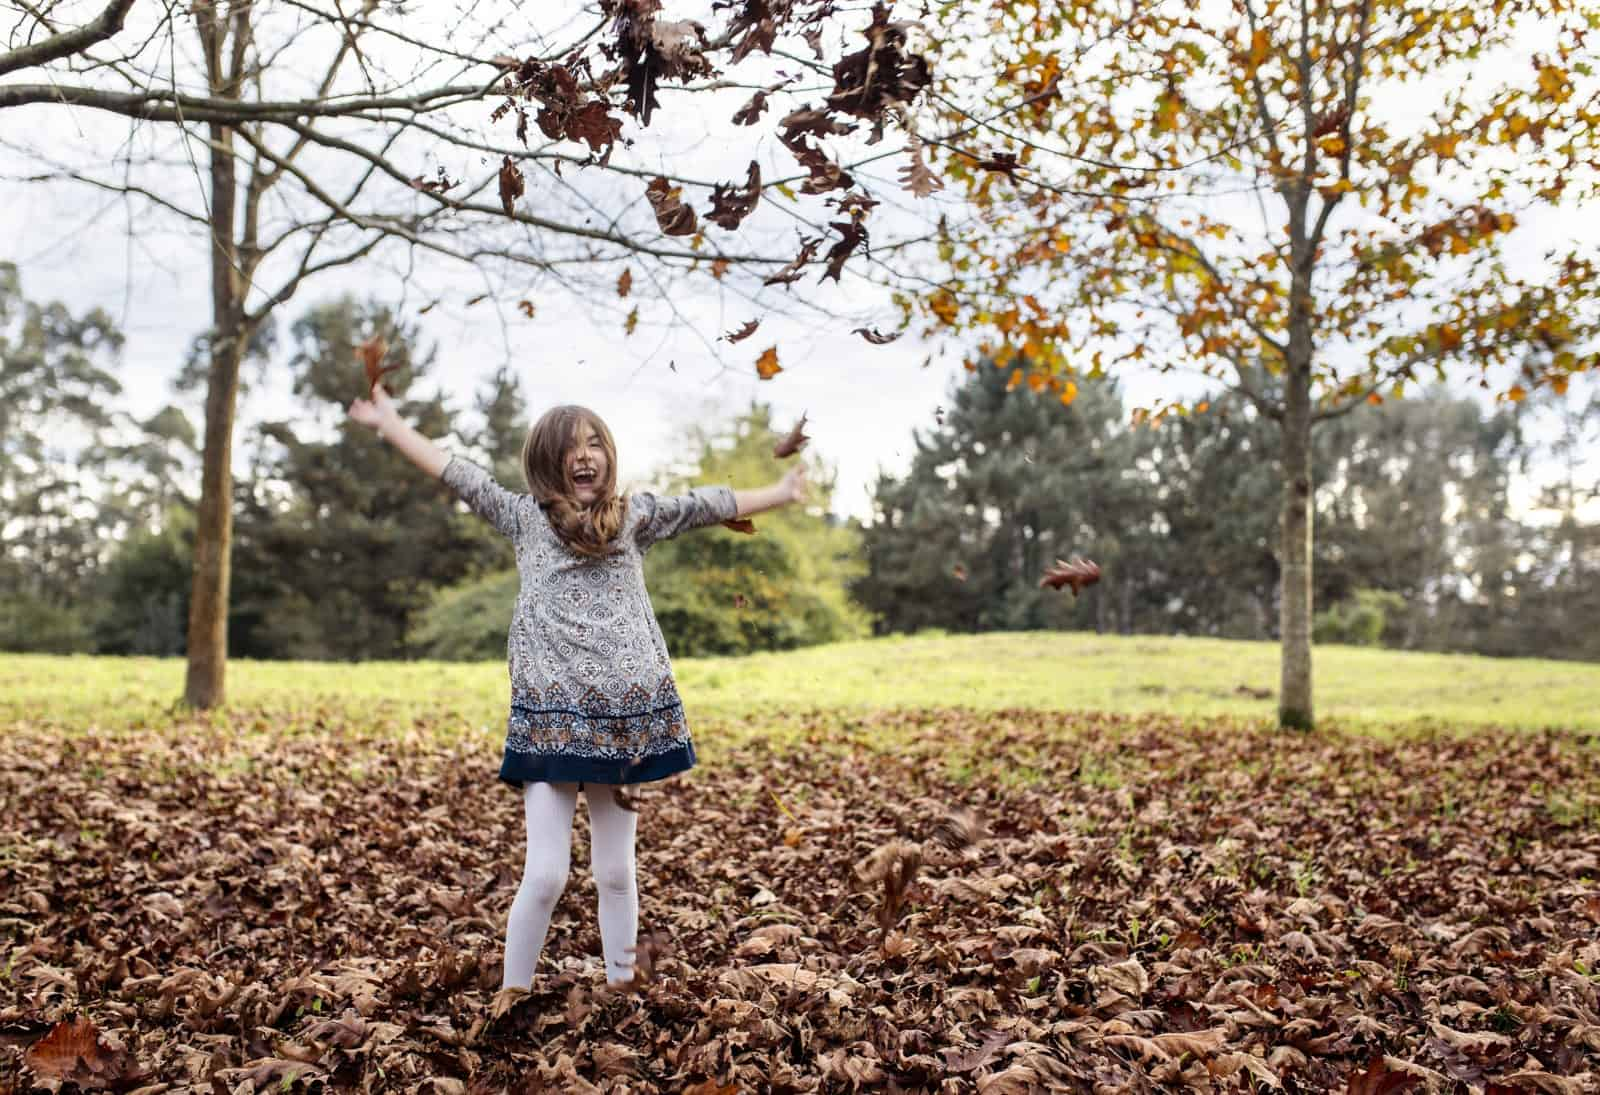 Laughing girl throwing autumn leaves in the air